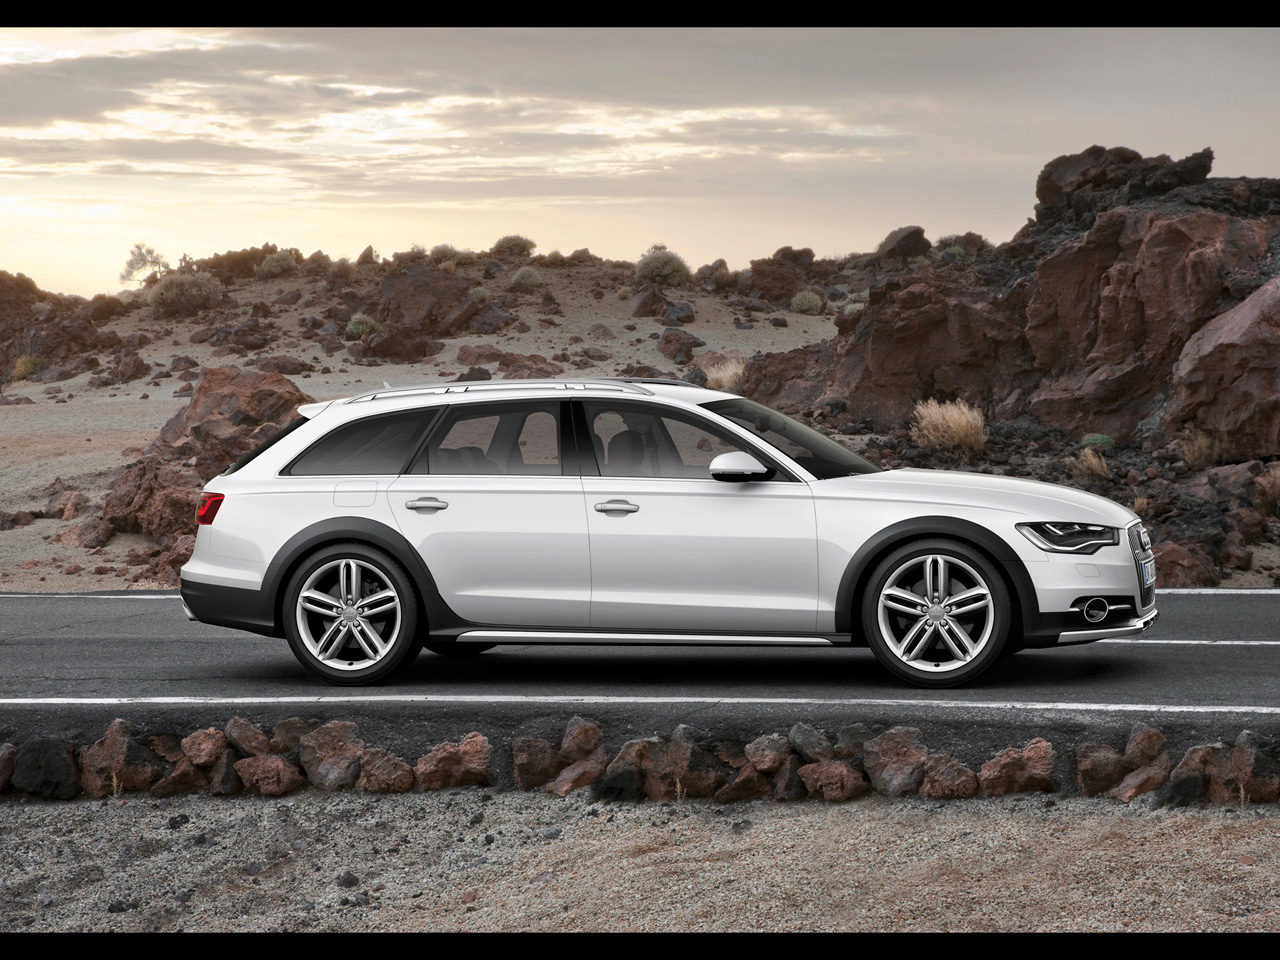 2012 audi a6 allroad quattro specs and review new cars. Black Bedroom Furniture Sets. Home Design Ideas